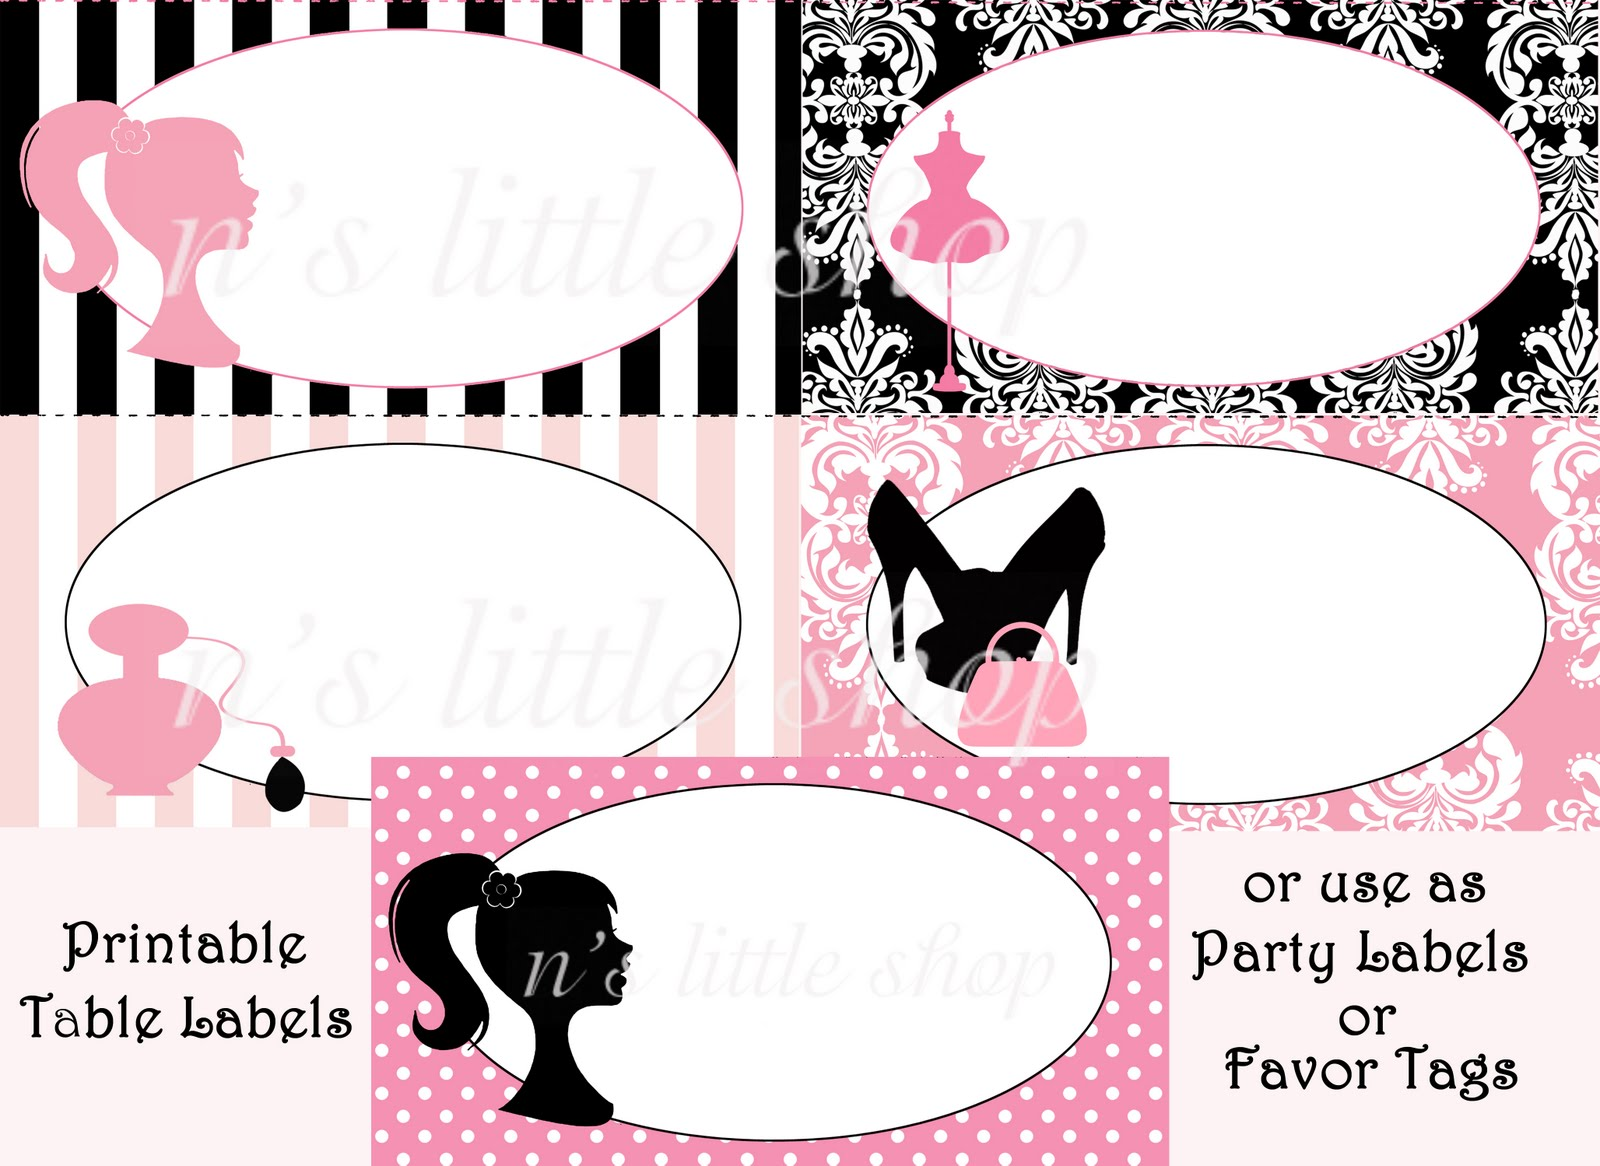 Fashion Party Invitations Gallery - Party Invitations Ideas